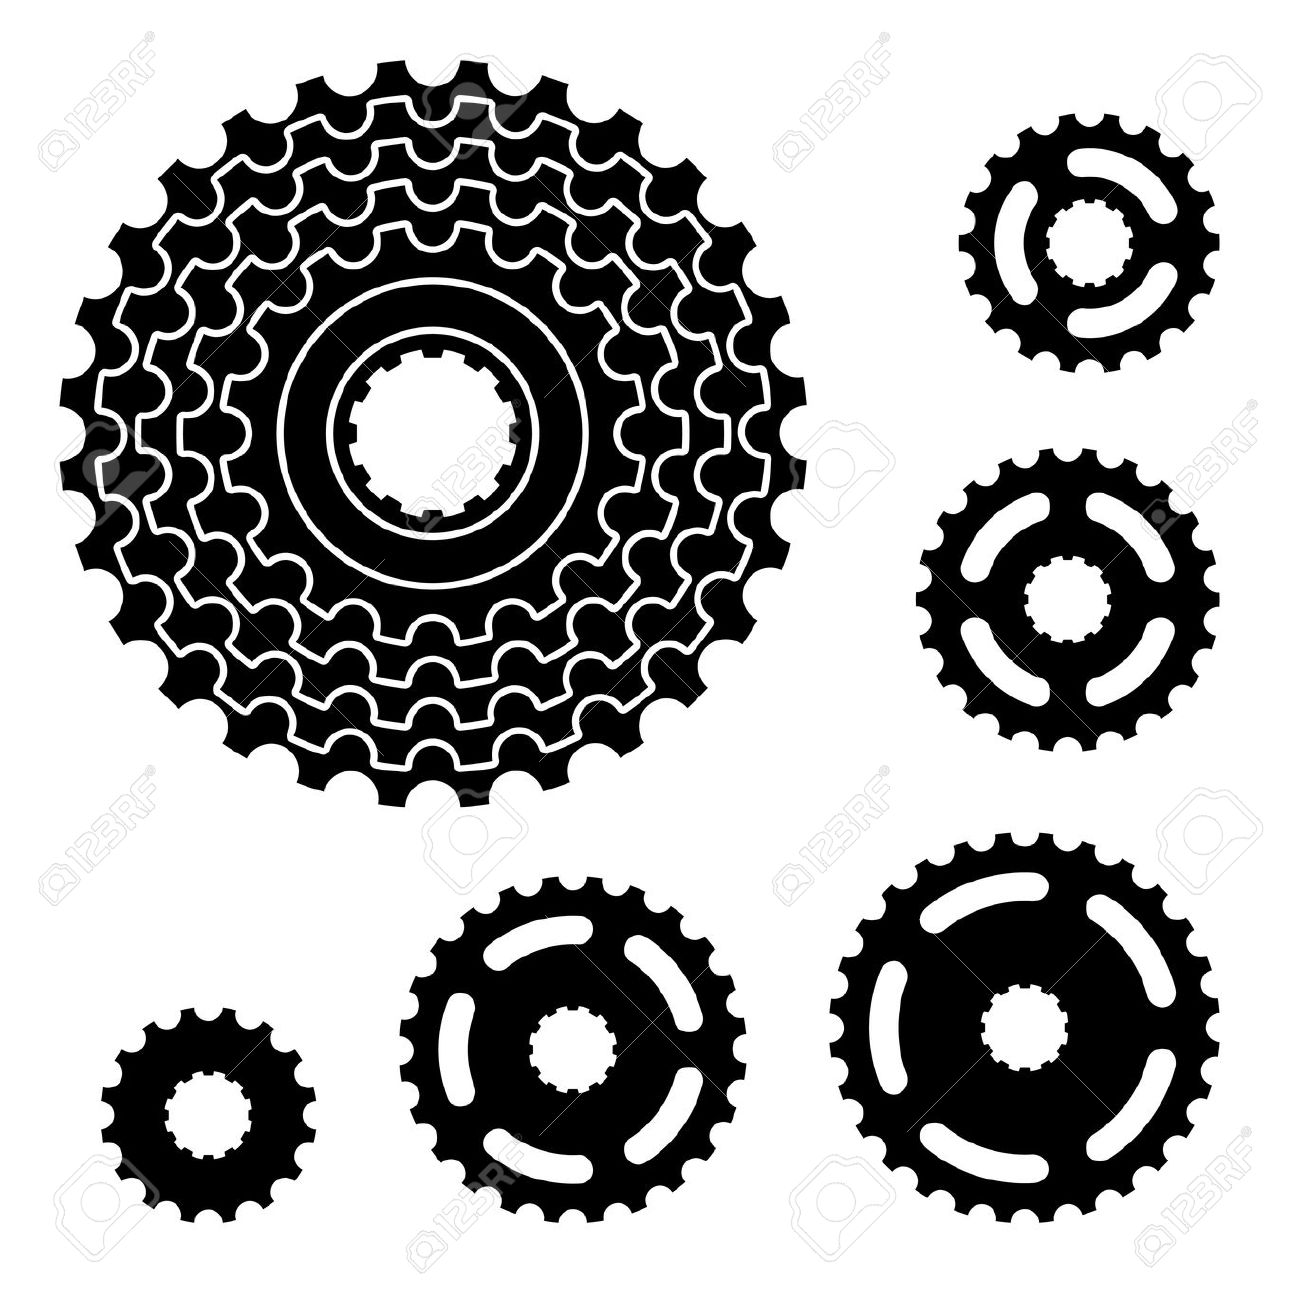 1300x1300 21166952 Vector Bicycle Gear Cogwheel Sprocket Symbols Stock